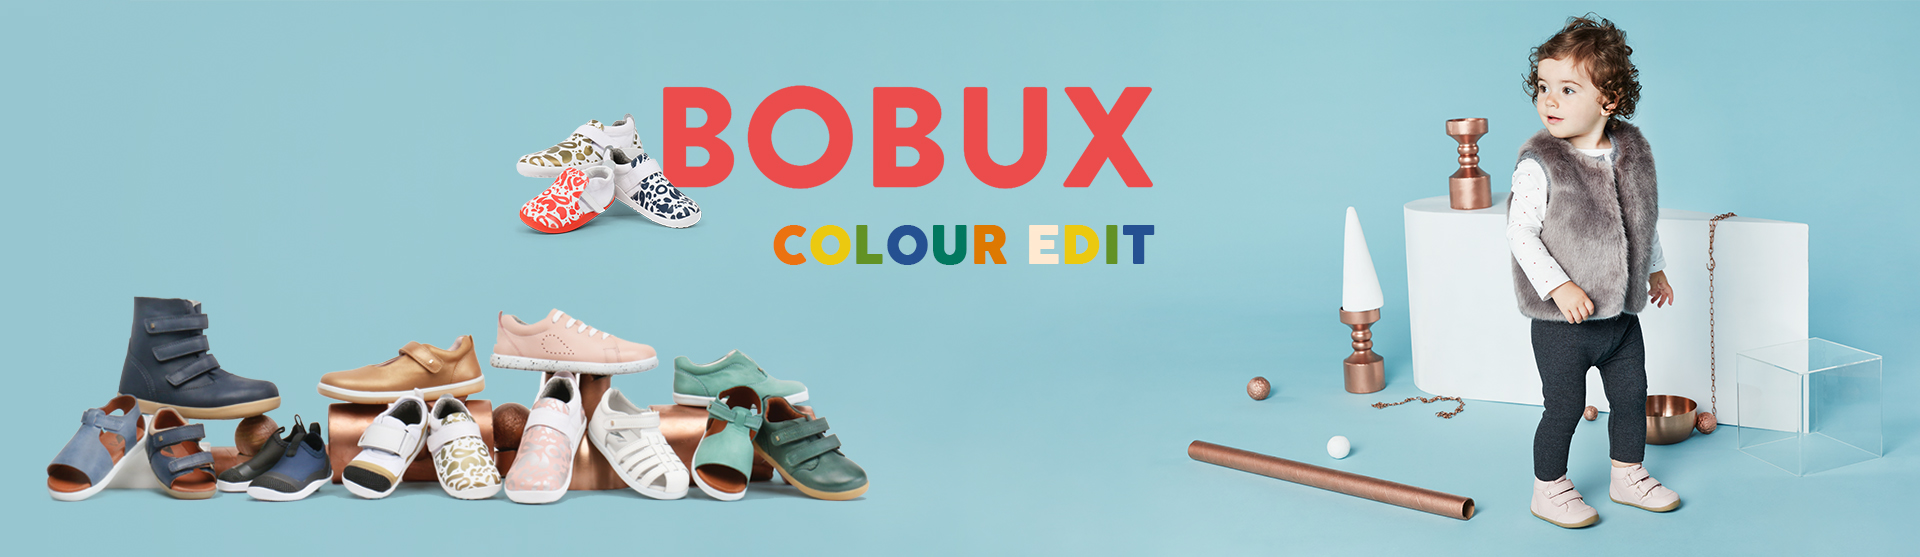 EXPLORE BOBUX FOOTWEAR AT 121SHOES.CO.UK